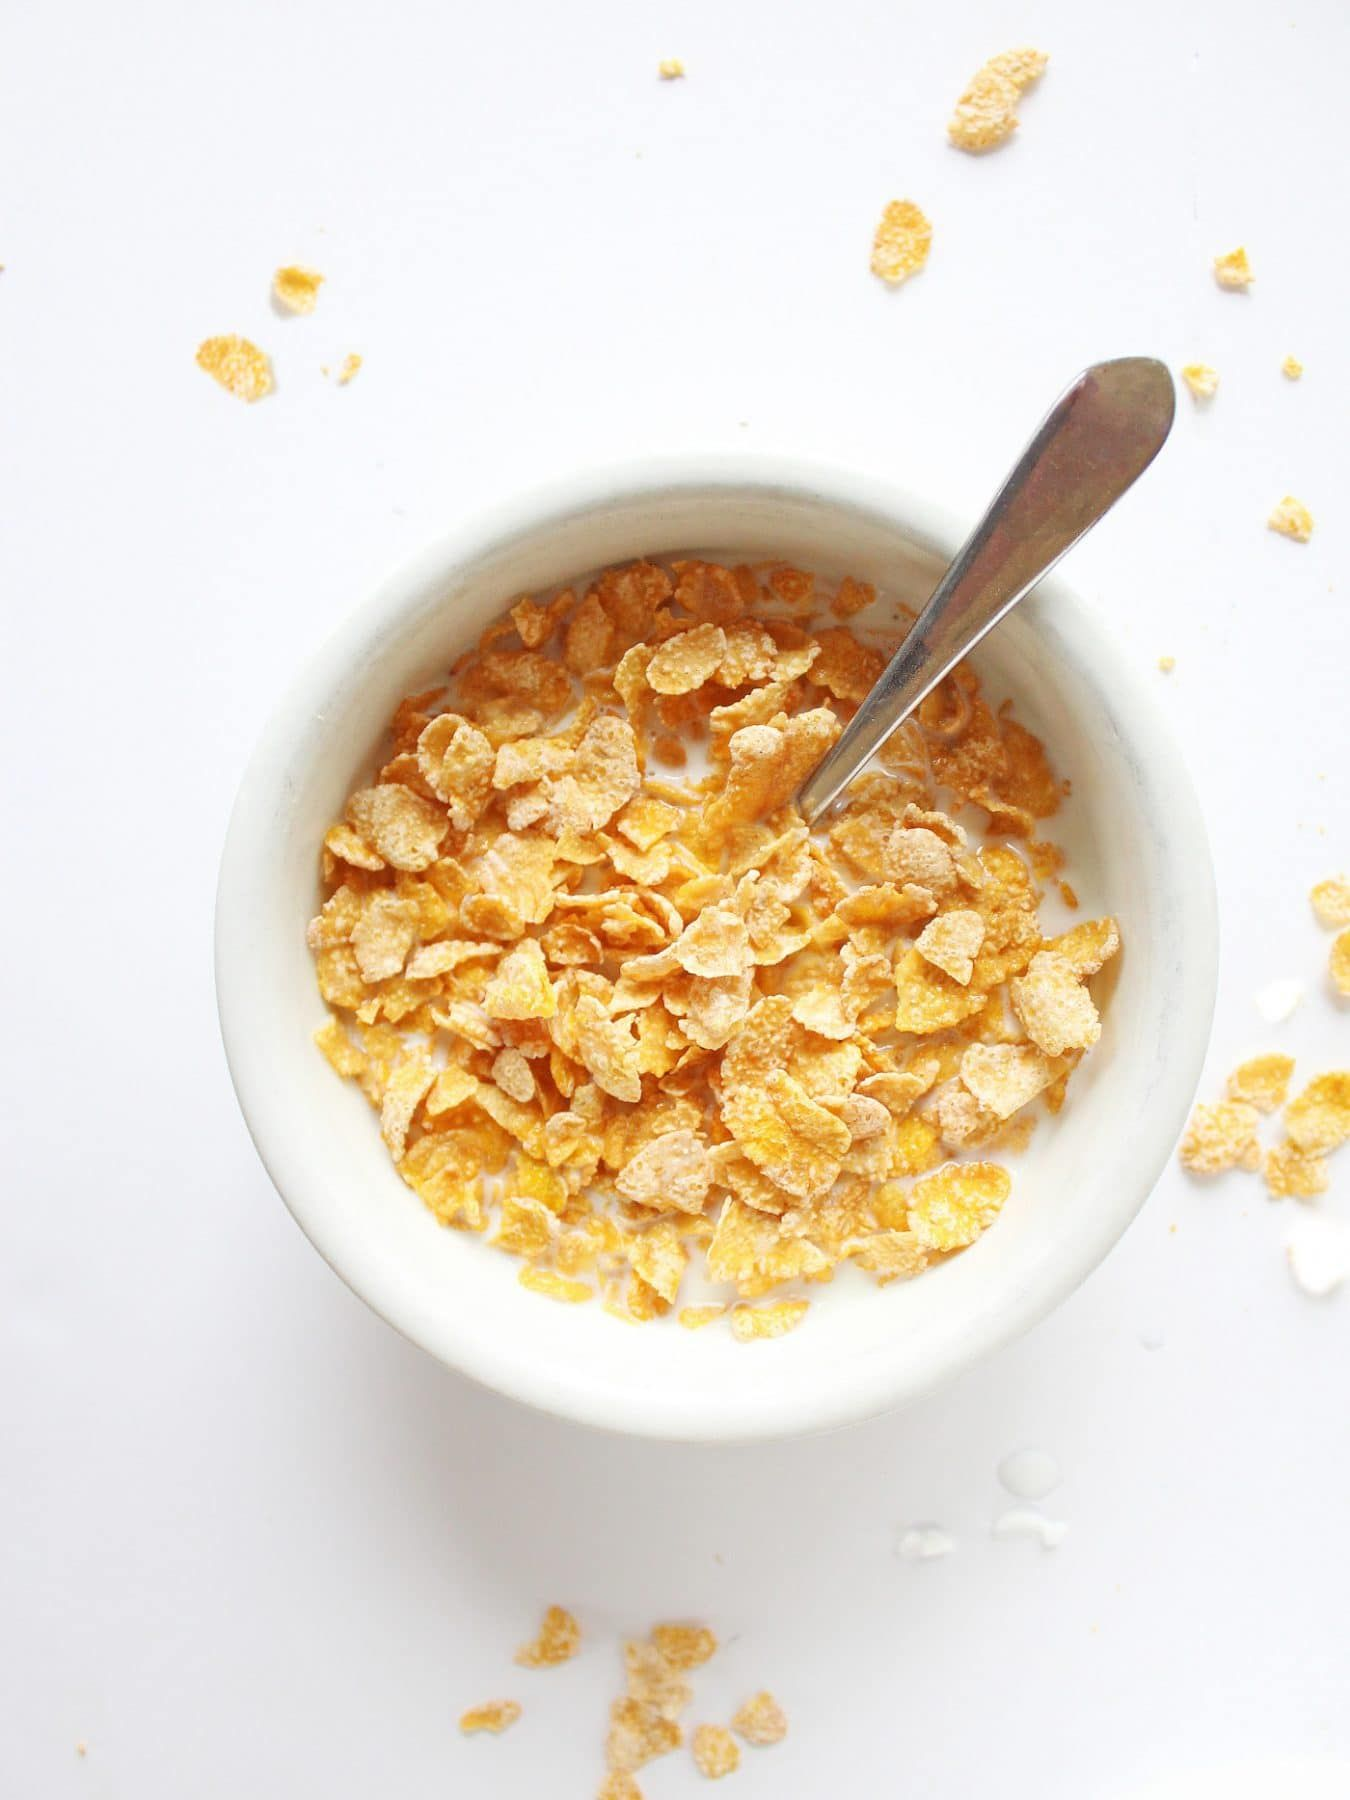 This Is The Best Cereal Milk Ice Cream Recipe It Tastes Just Like The Kind From Momofuku Milk Bar In Nyc Th Milk Ice Cream Milk Bar Recipes Ice Cream Recipes